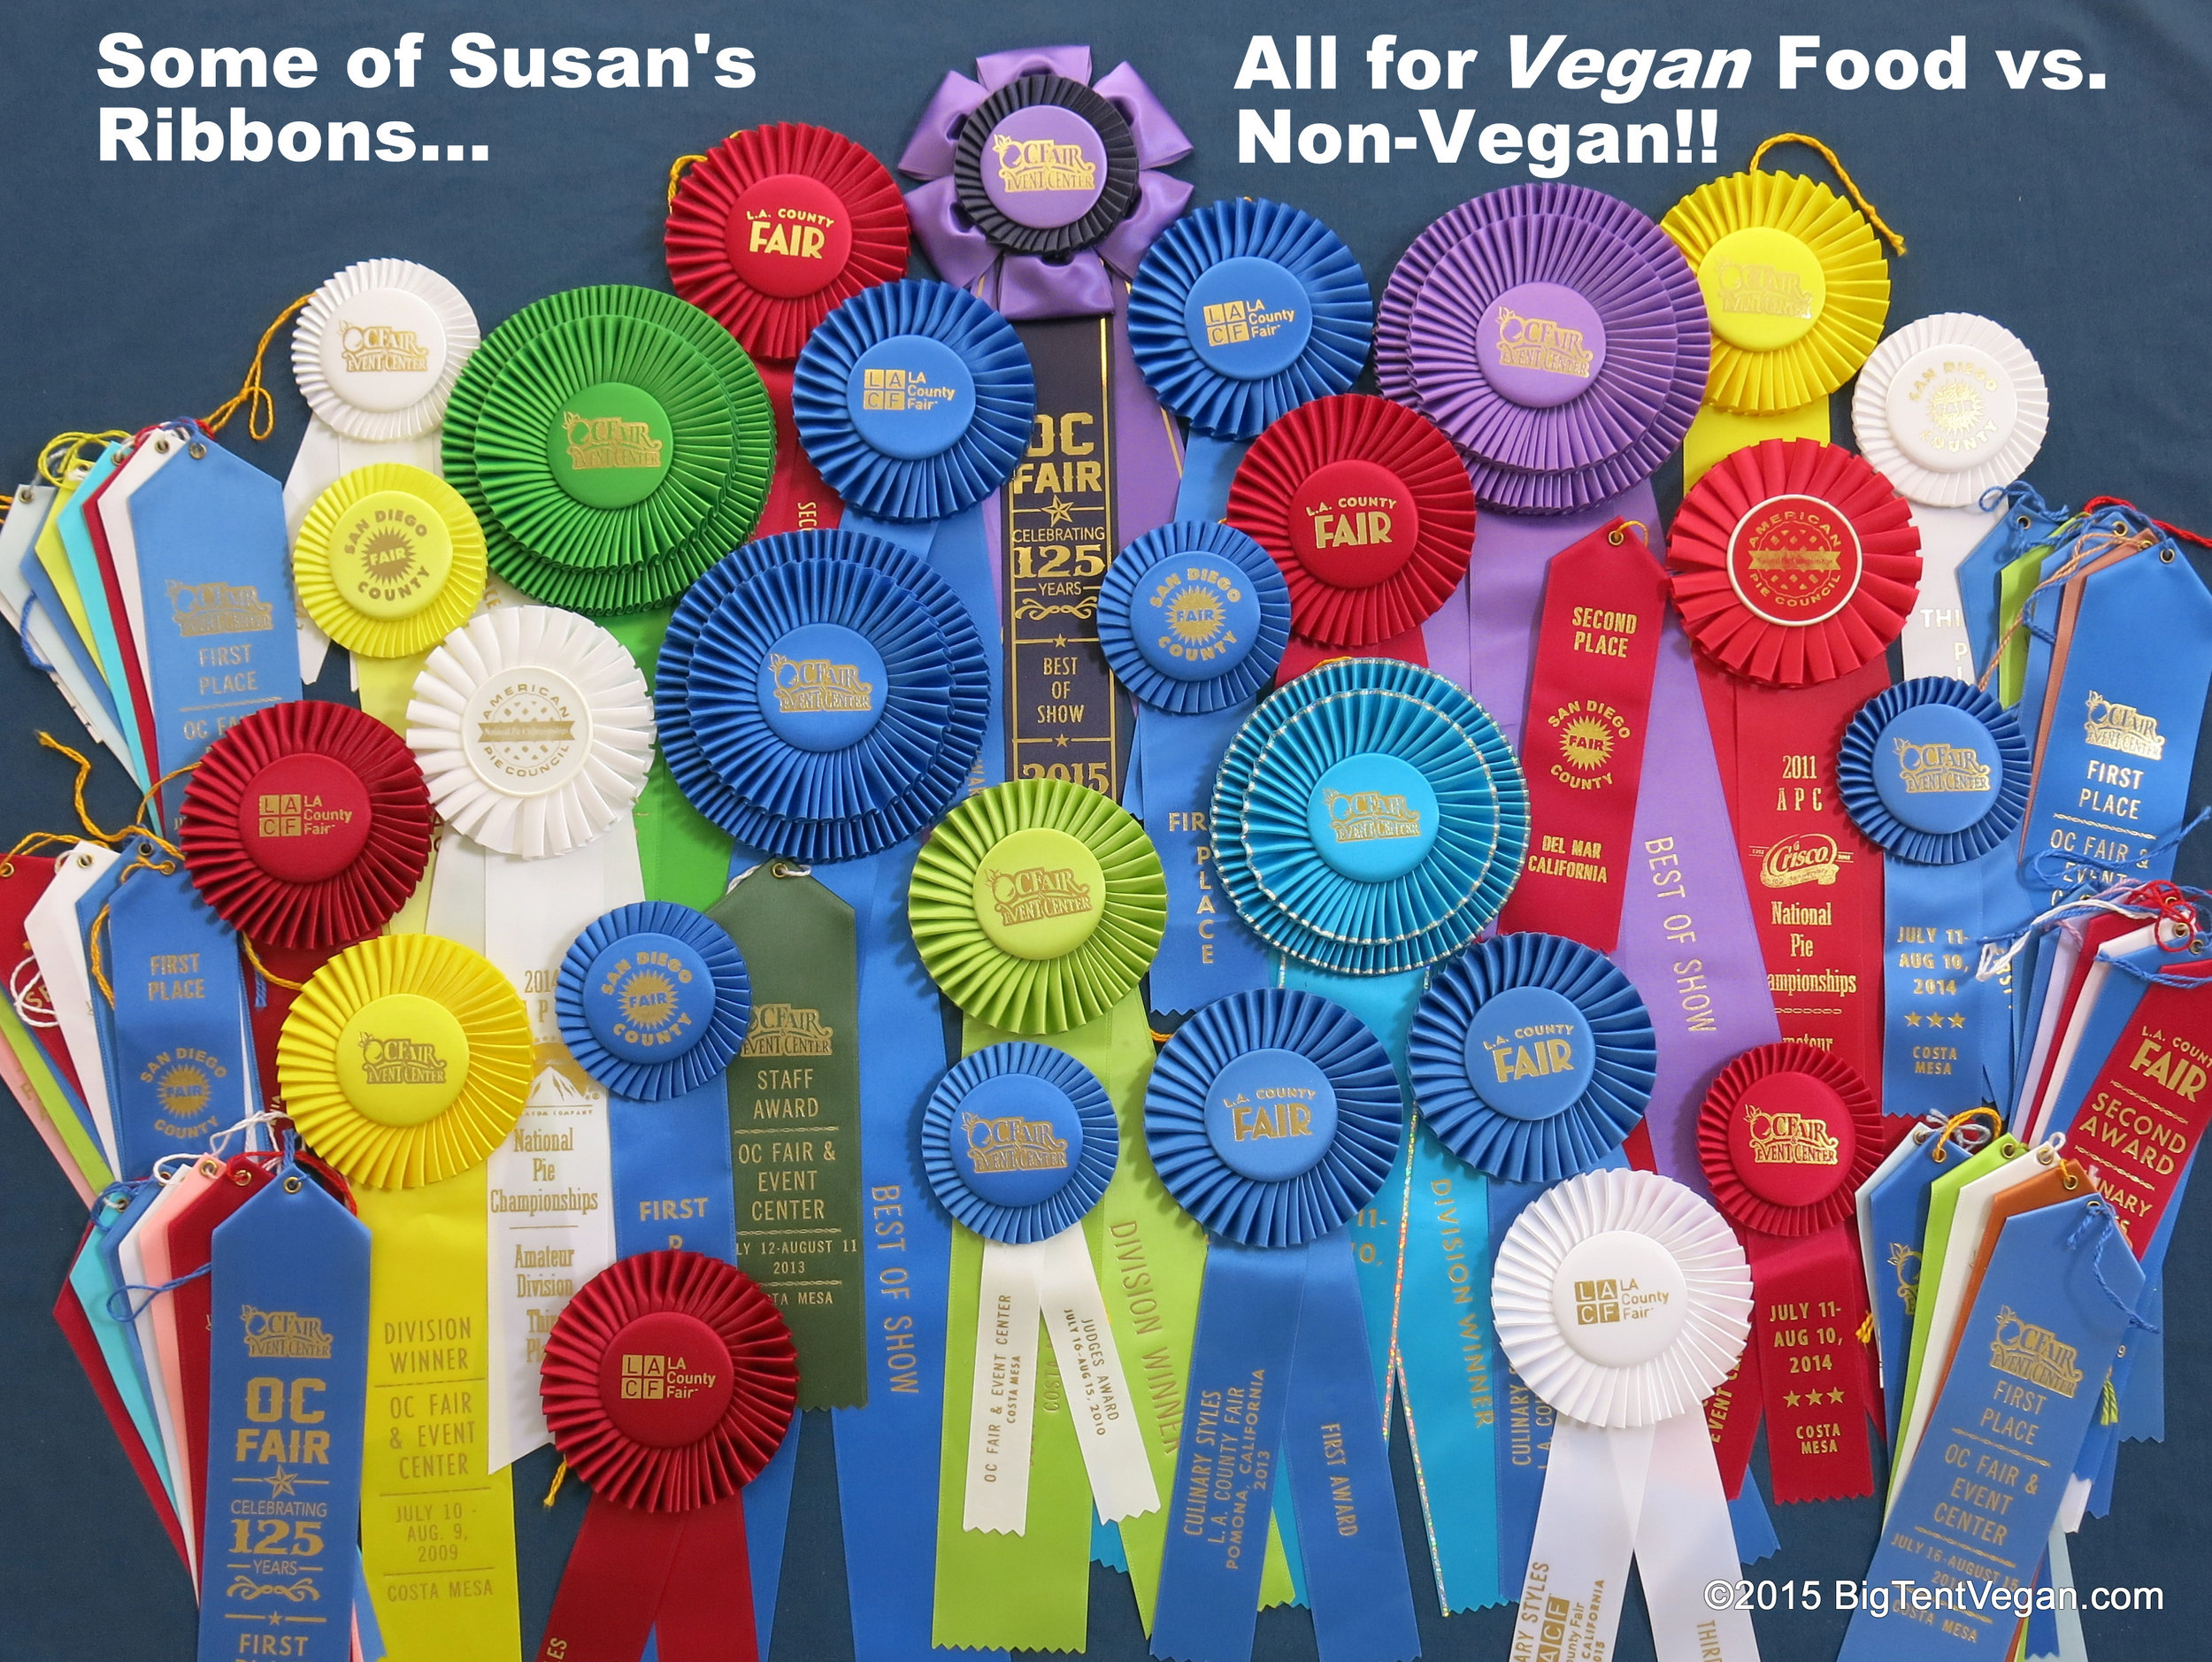 Some  of Susan's ribbons for cooking and baking,  all  for vegan food vs. non-vegan food!